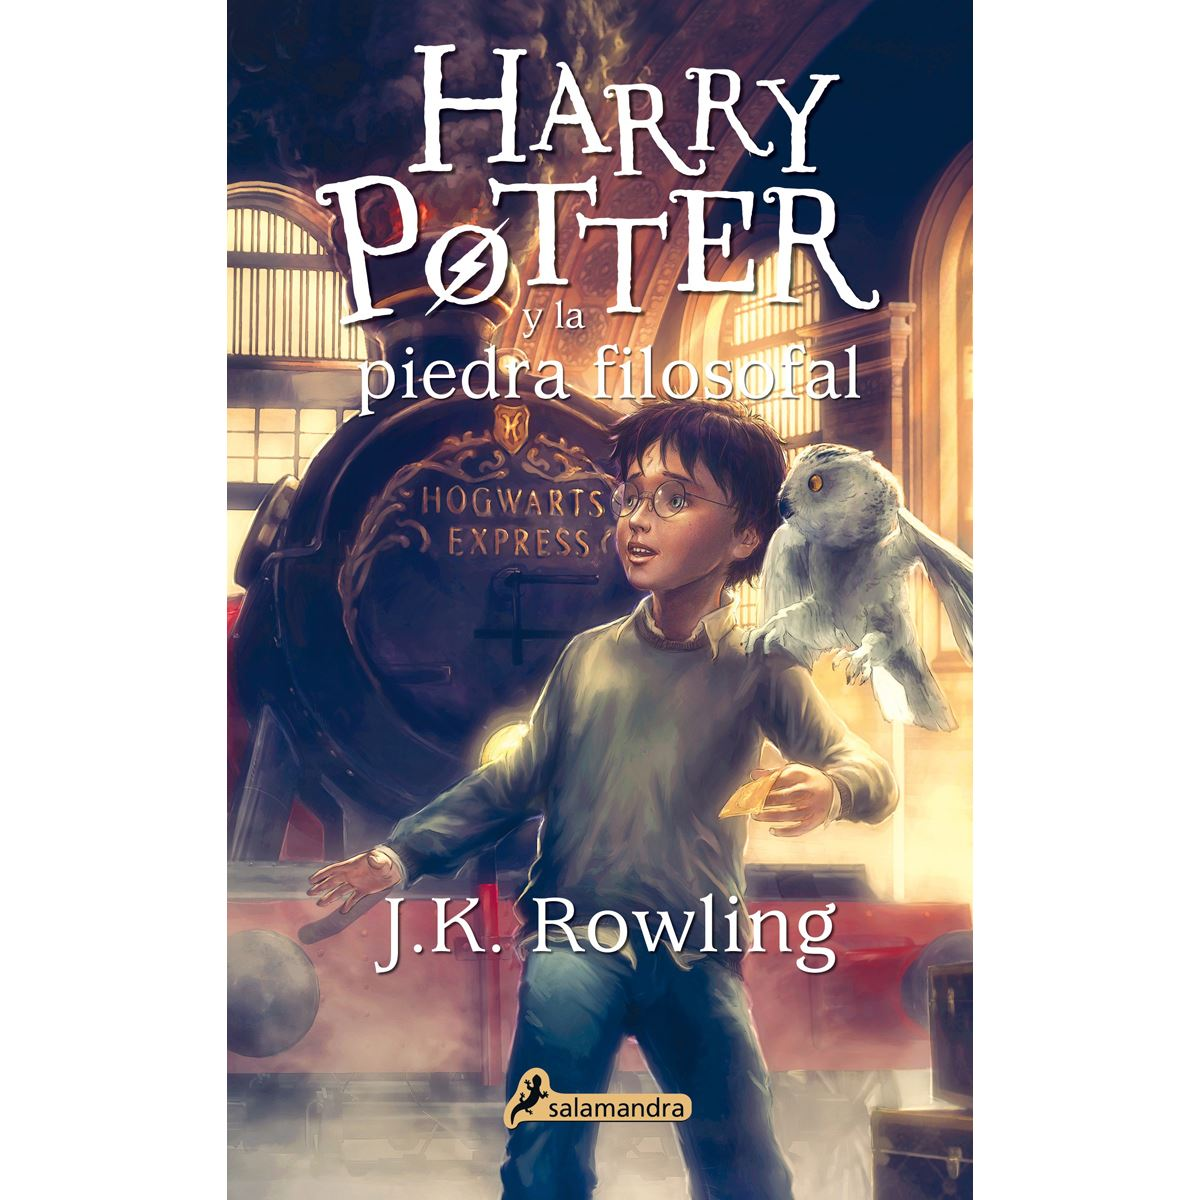 Comprar Libros De Harry Potter Harry Potter 1 Harry Potter Y La Piedra Filosofal Nueva